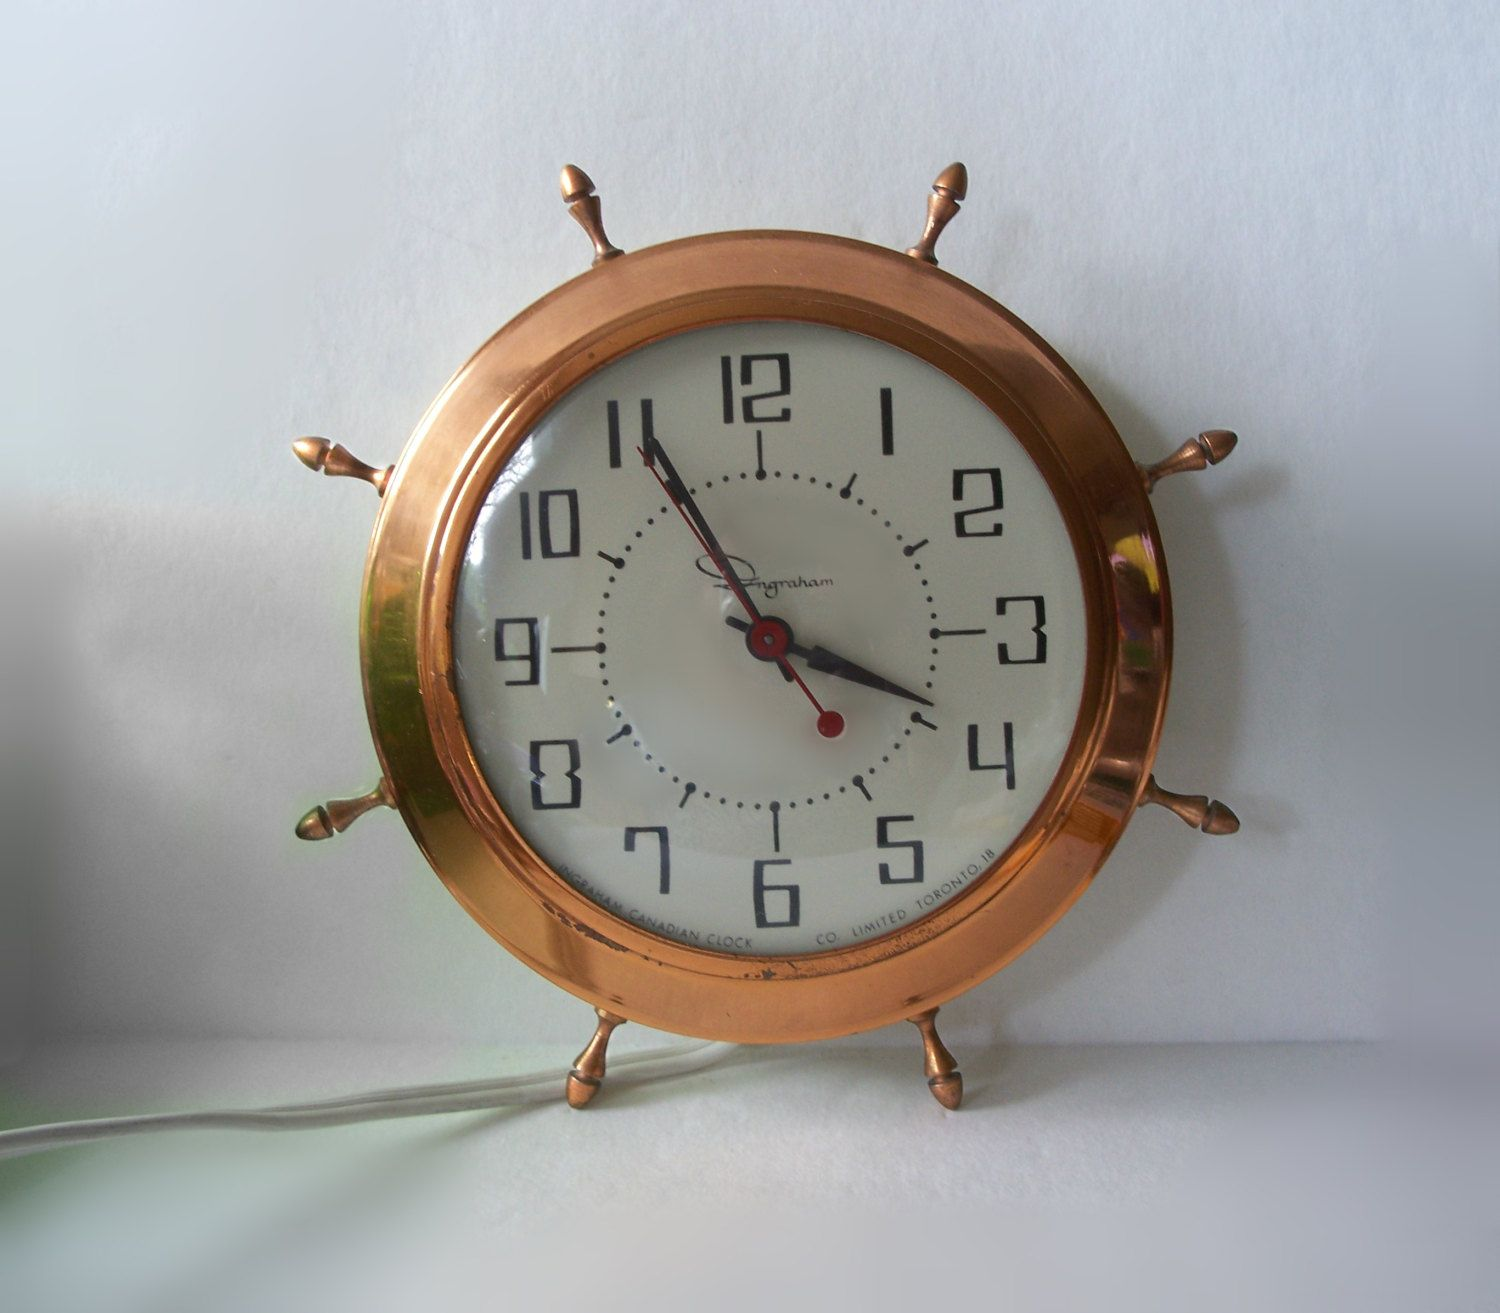 Retro Electric Kitchen Wall Clocks: Ingraham Ships Wheel Nautical Electric Wall Clock Copper & Cream • Vintage